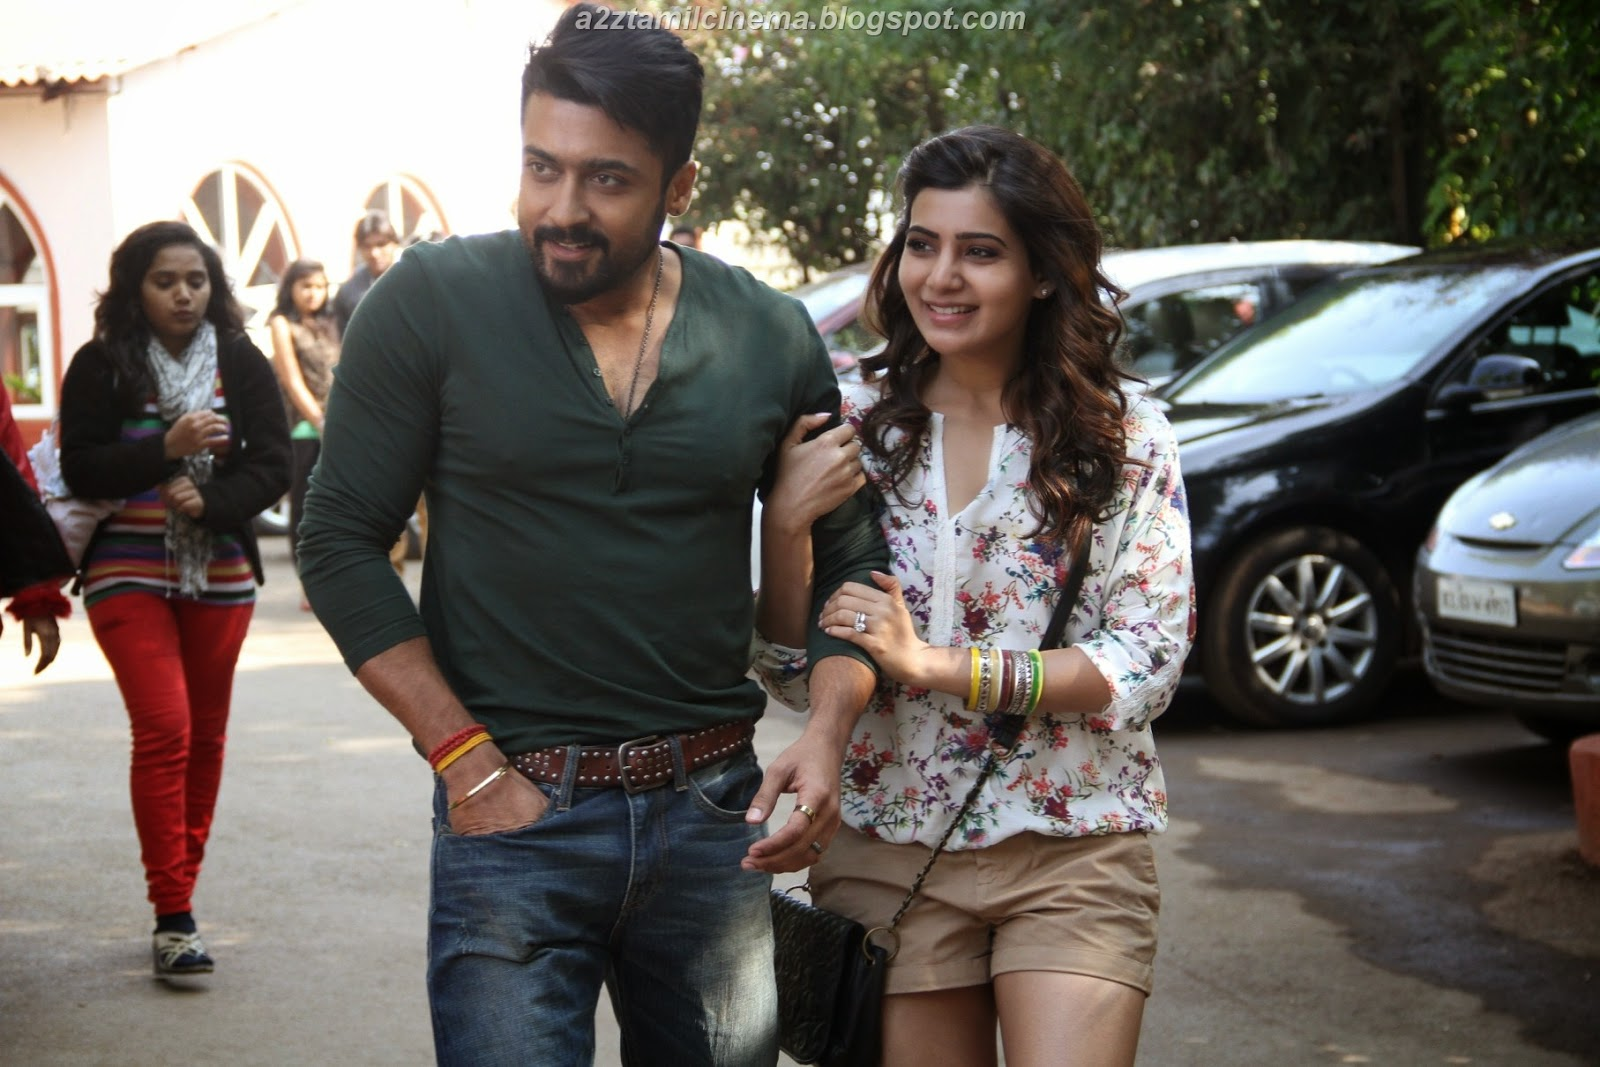 Surya Sikindar Stills In Hd Wallpapers: ANJAAN NEW HD WALLPAPER COLLECTIONS DOWNLOAD